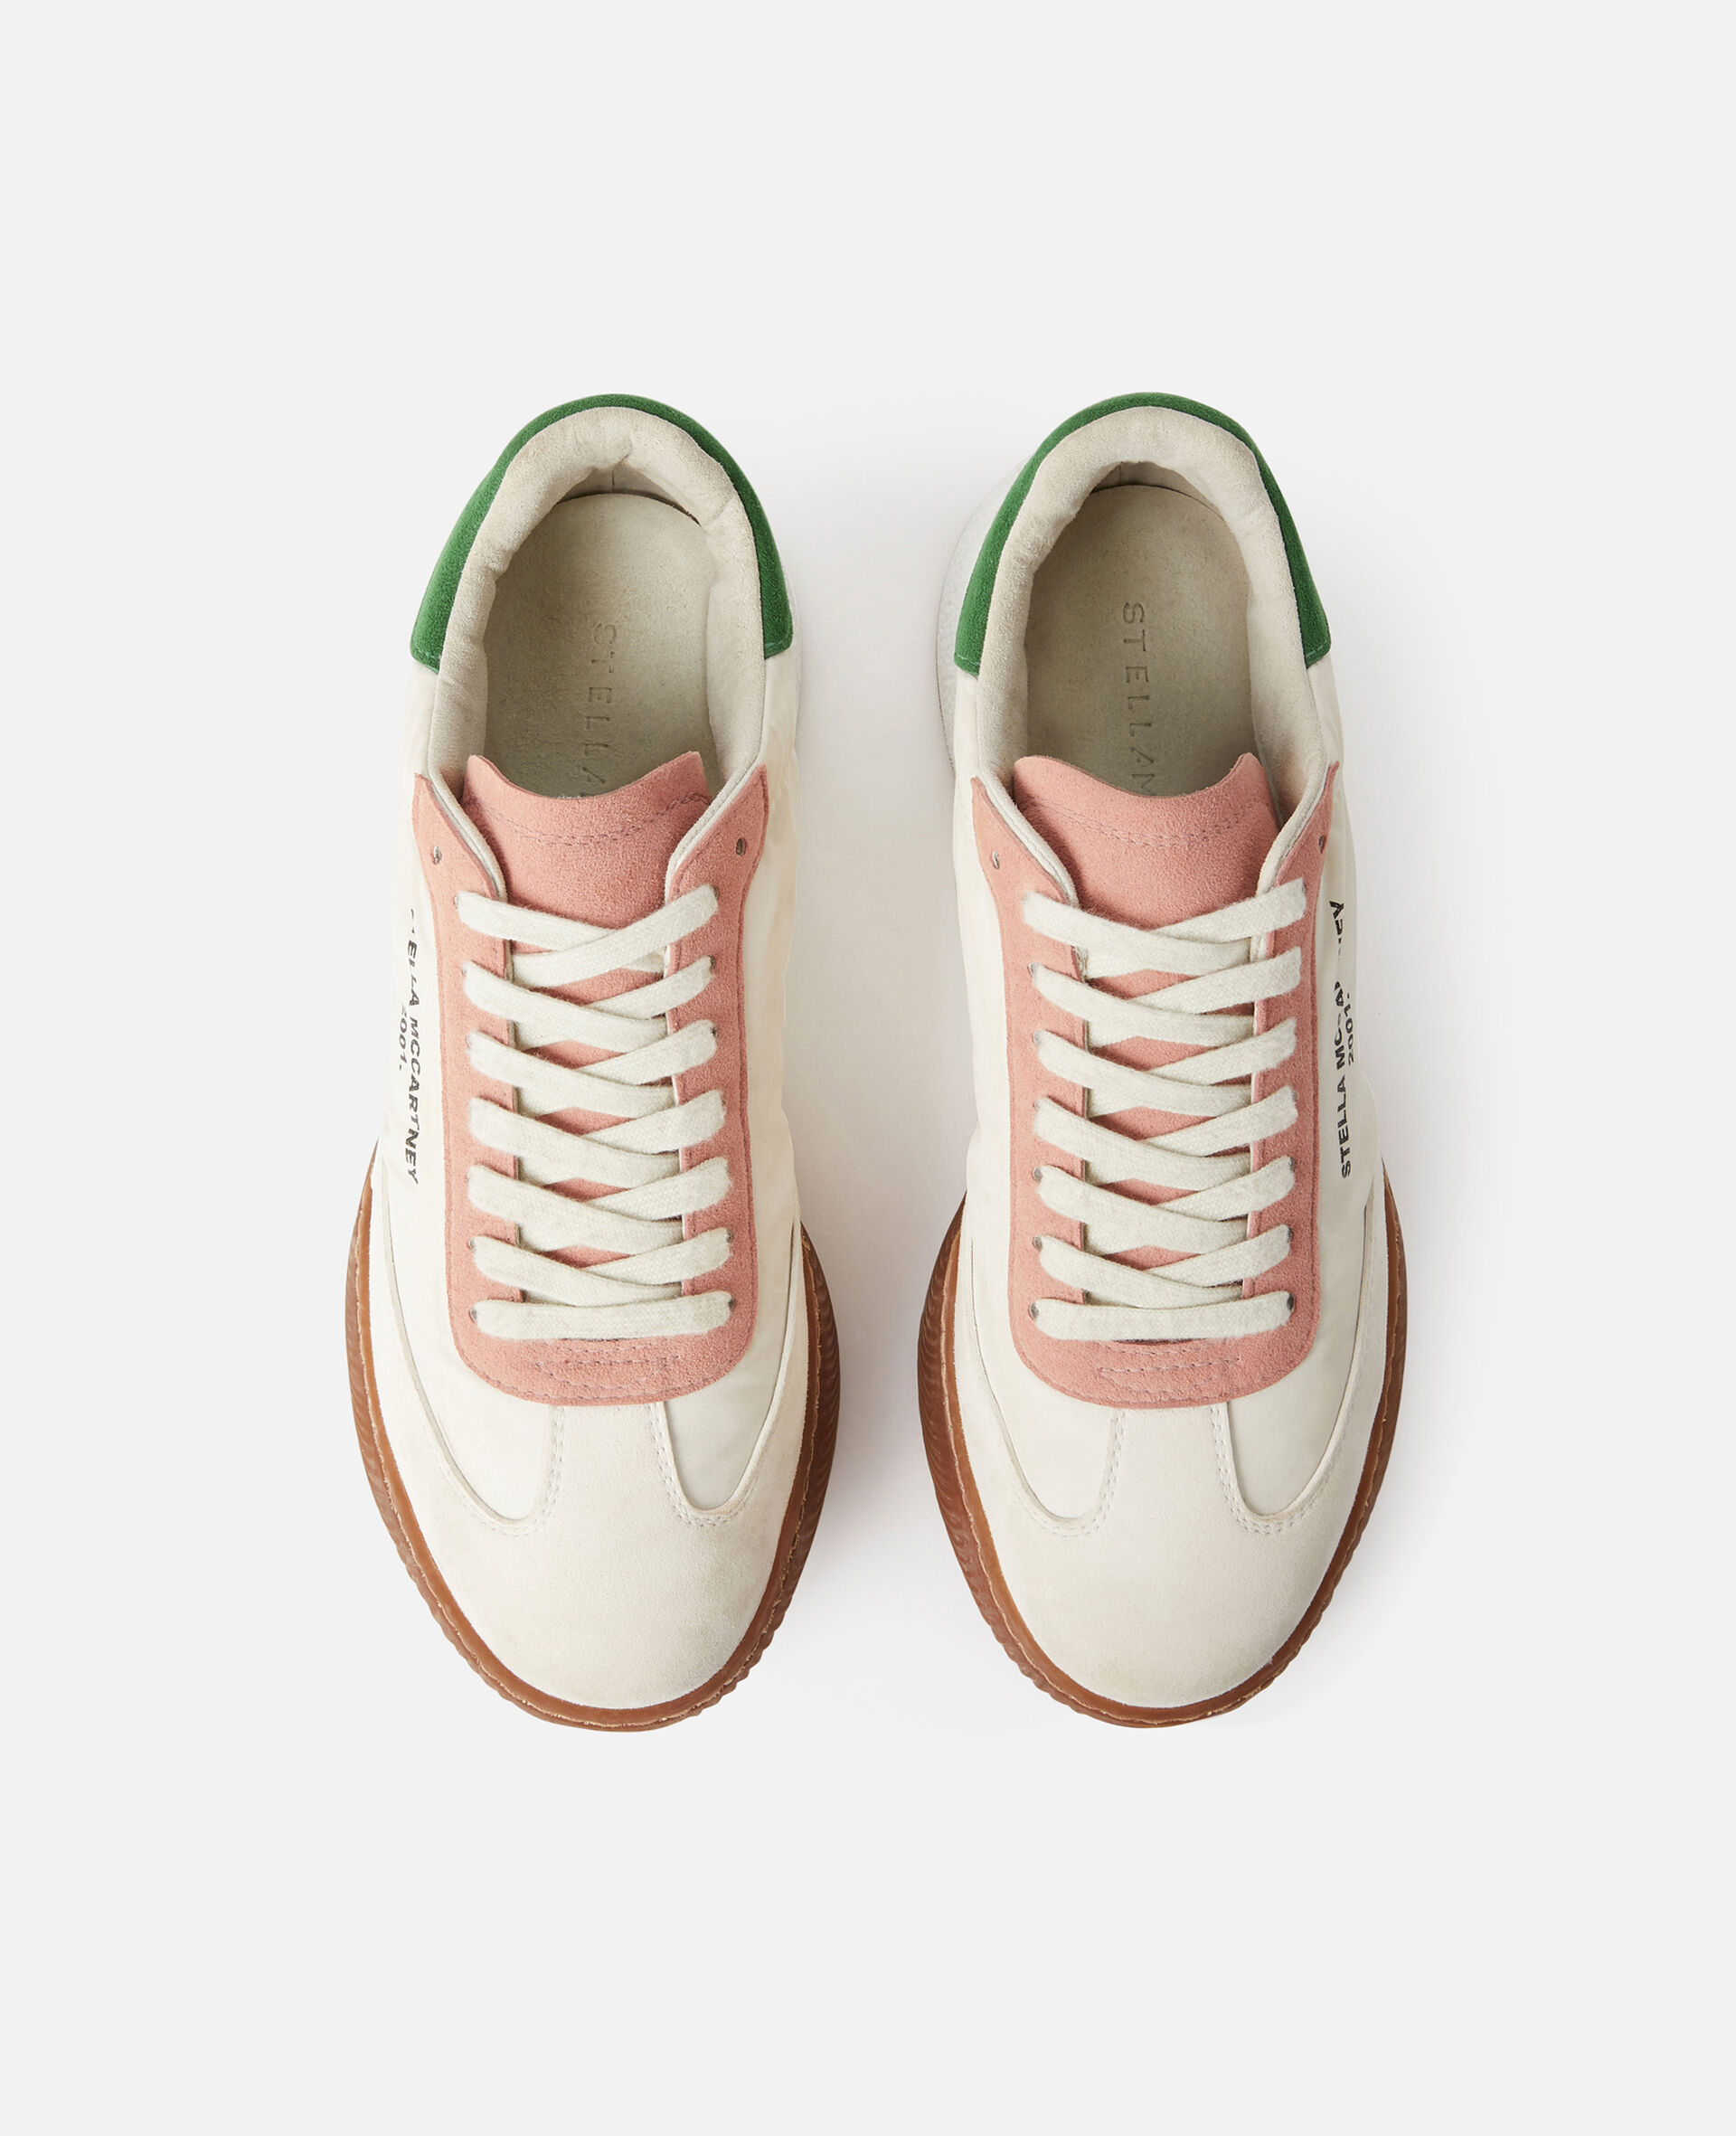 Loop Lace-up Sneakers-Multicoloured-large image number 3